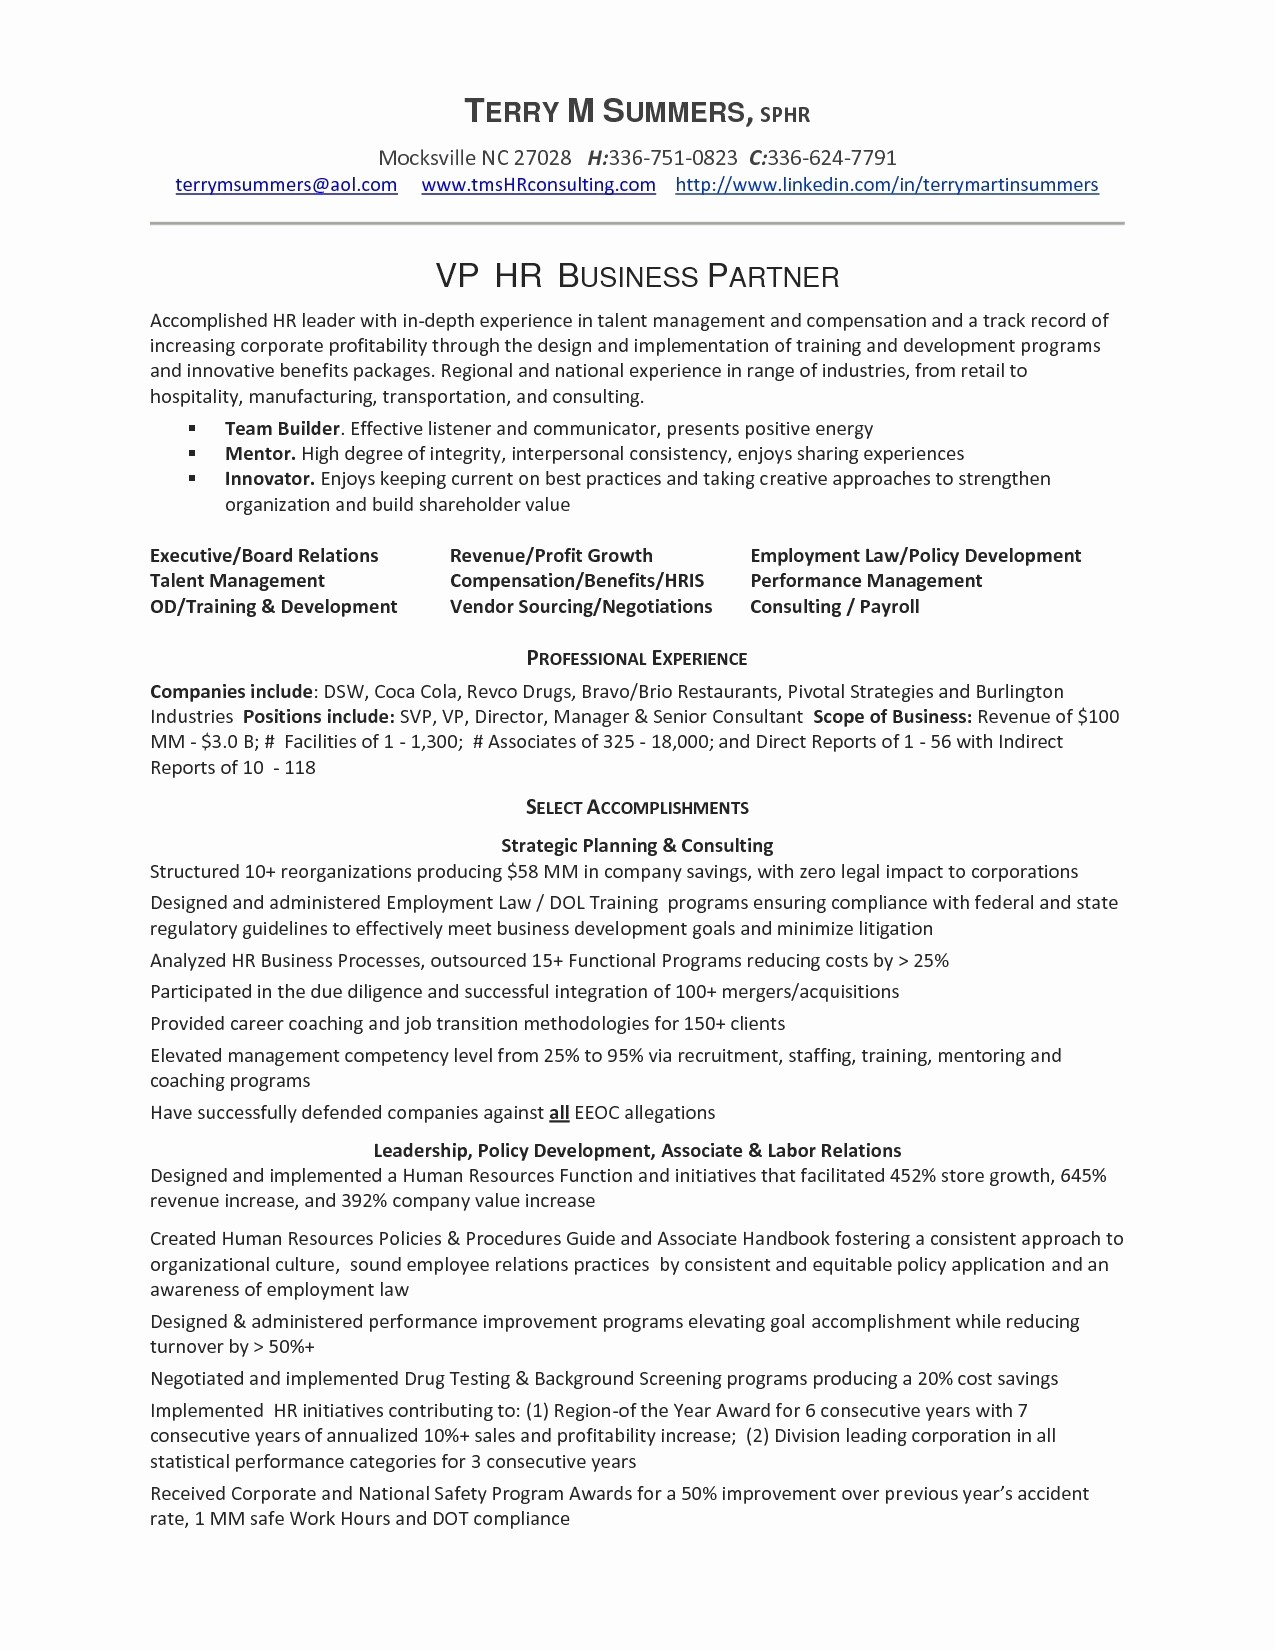 Corporate Resolution Letter Template - Luxury Corporate Resolution Template